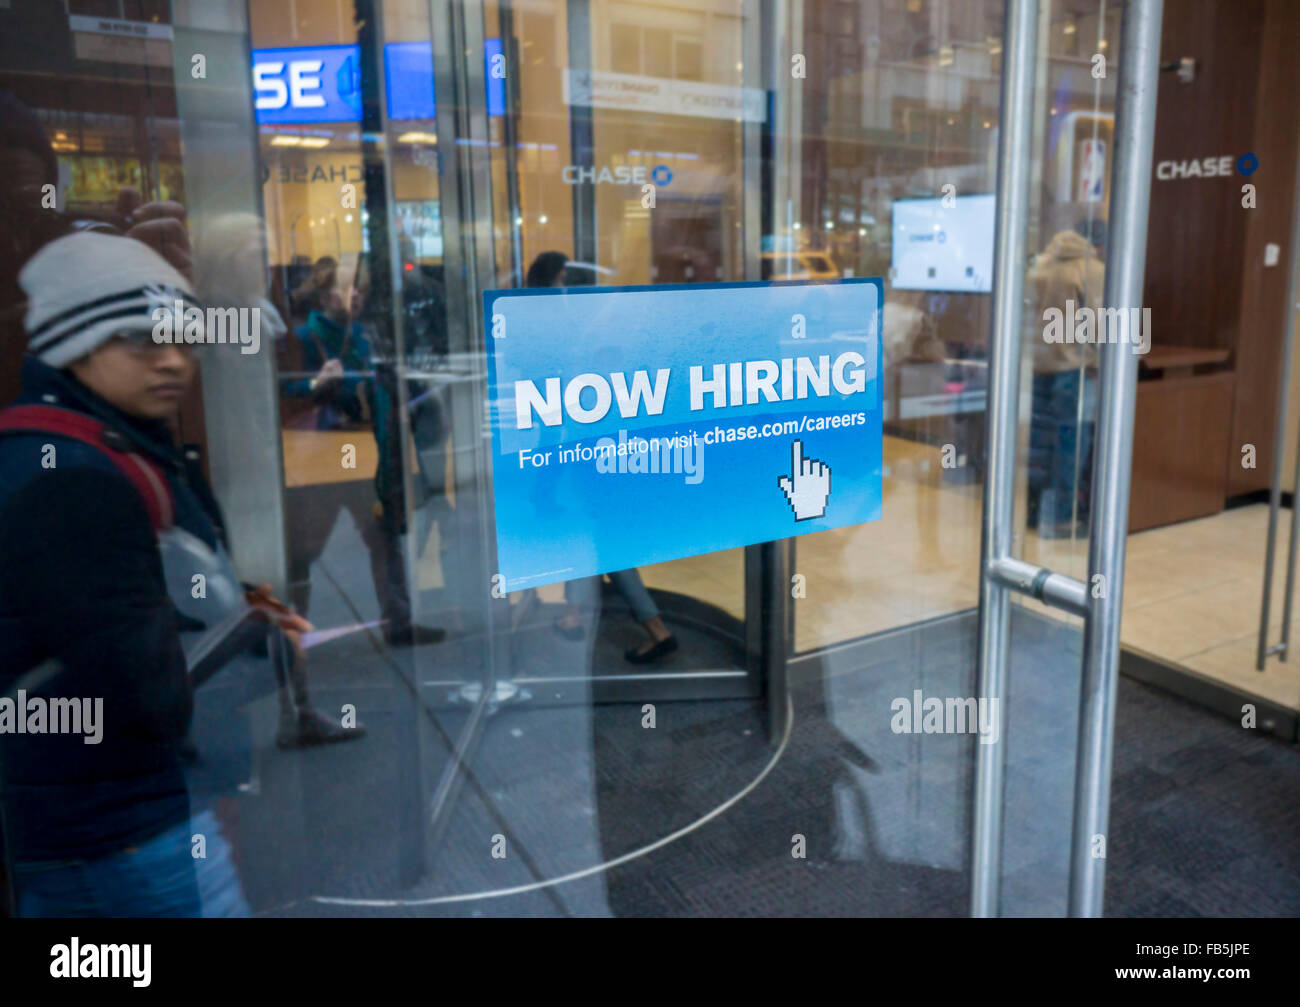 A sign in the window of a JPMorgan bank branch in New York advises